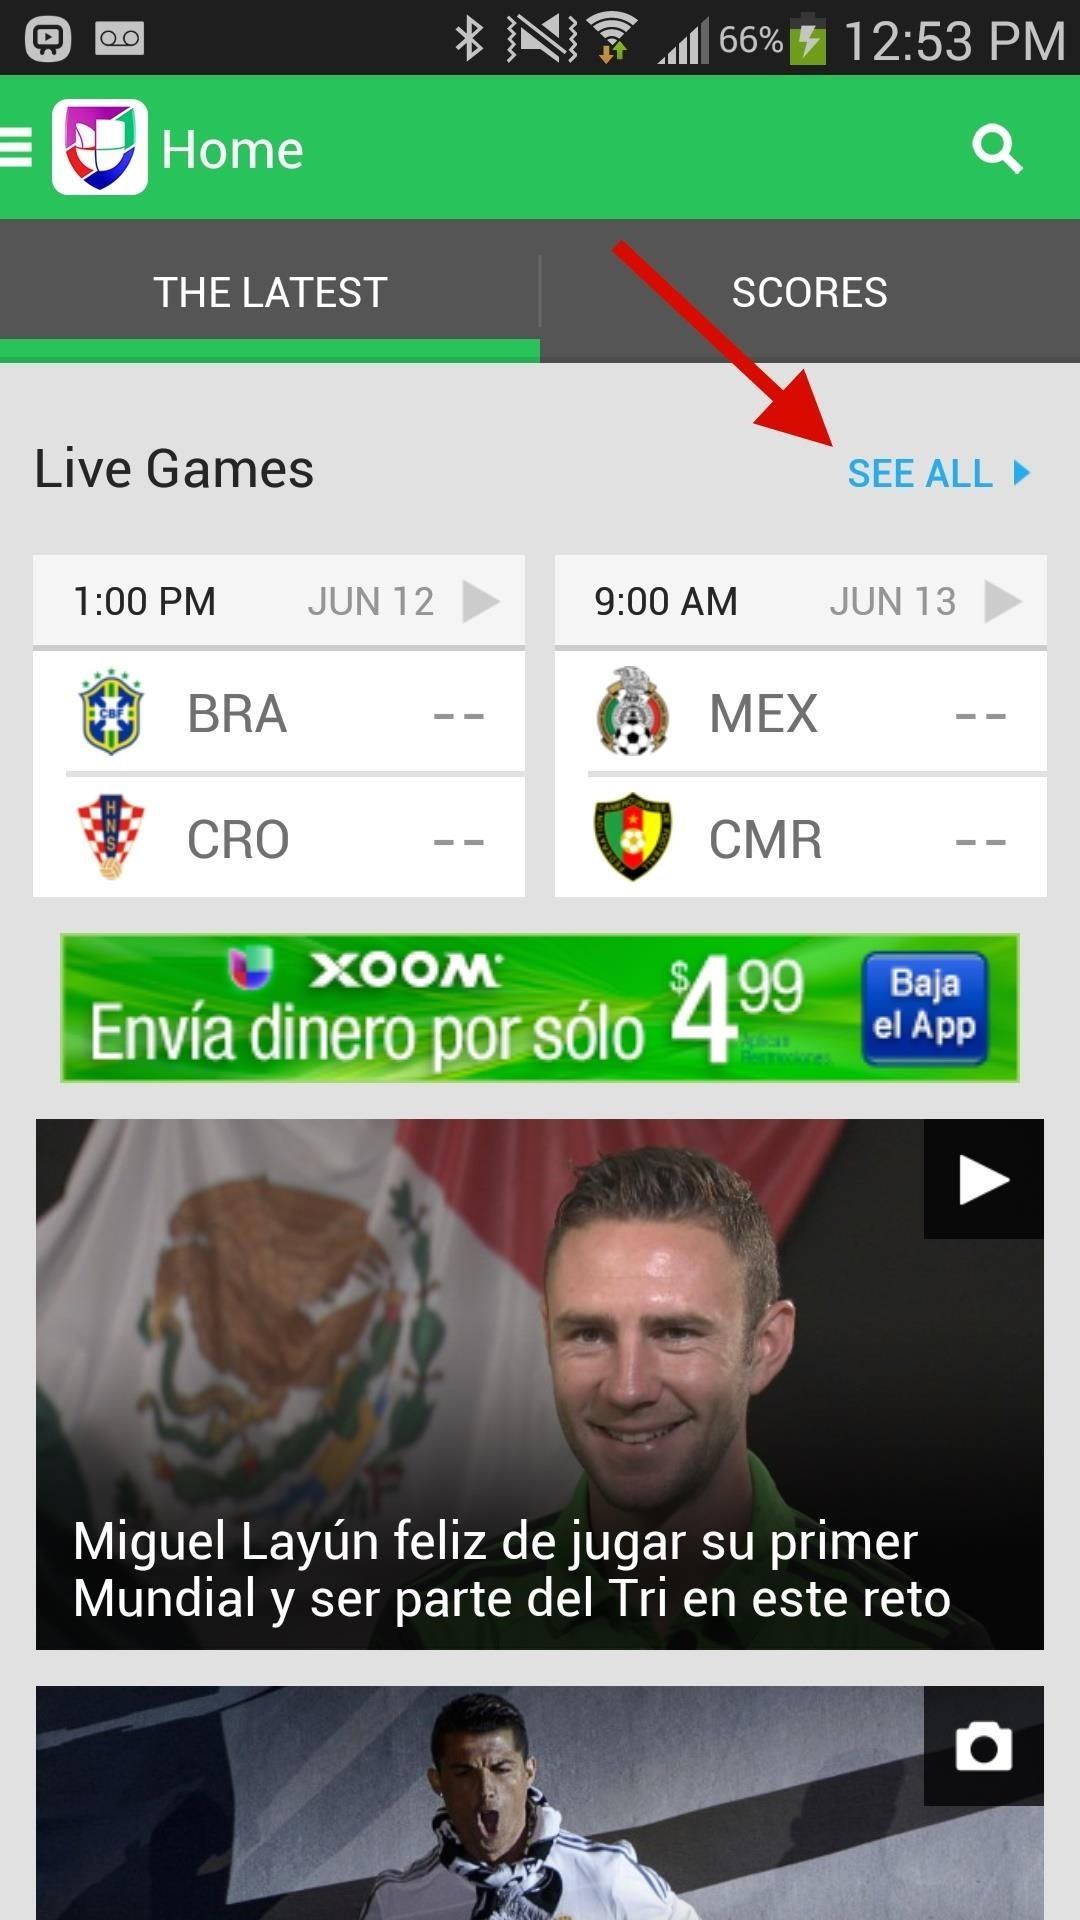 How to Watch the 2014 World Cup Online & on Your Phone—Every Match Streamed Live